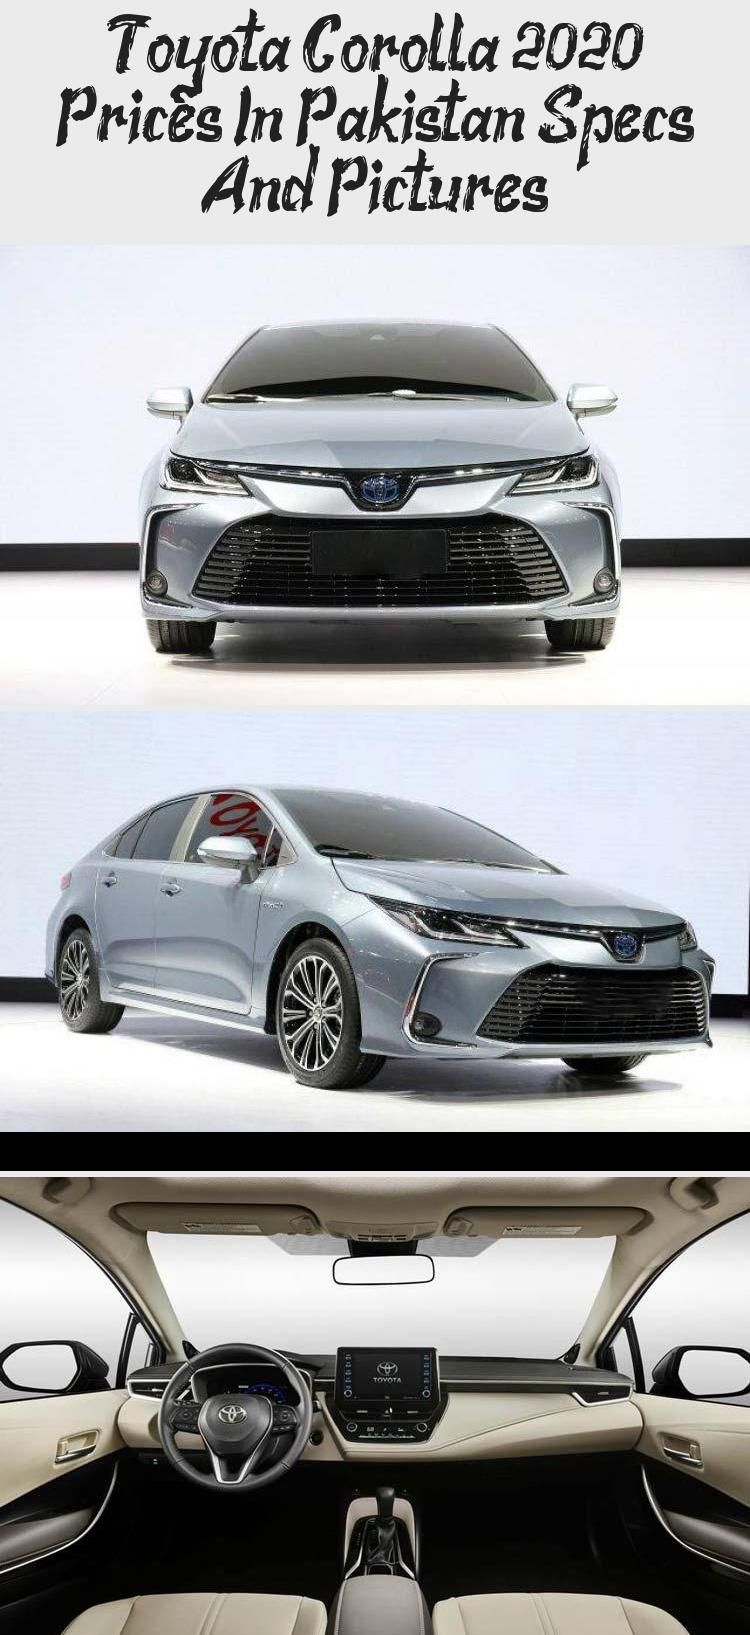 Toyota Corolla 2020 Prices In Pakistan Specs And Pictures Toyota Corolla Toyota Honda City